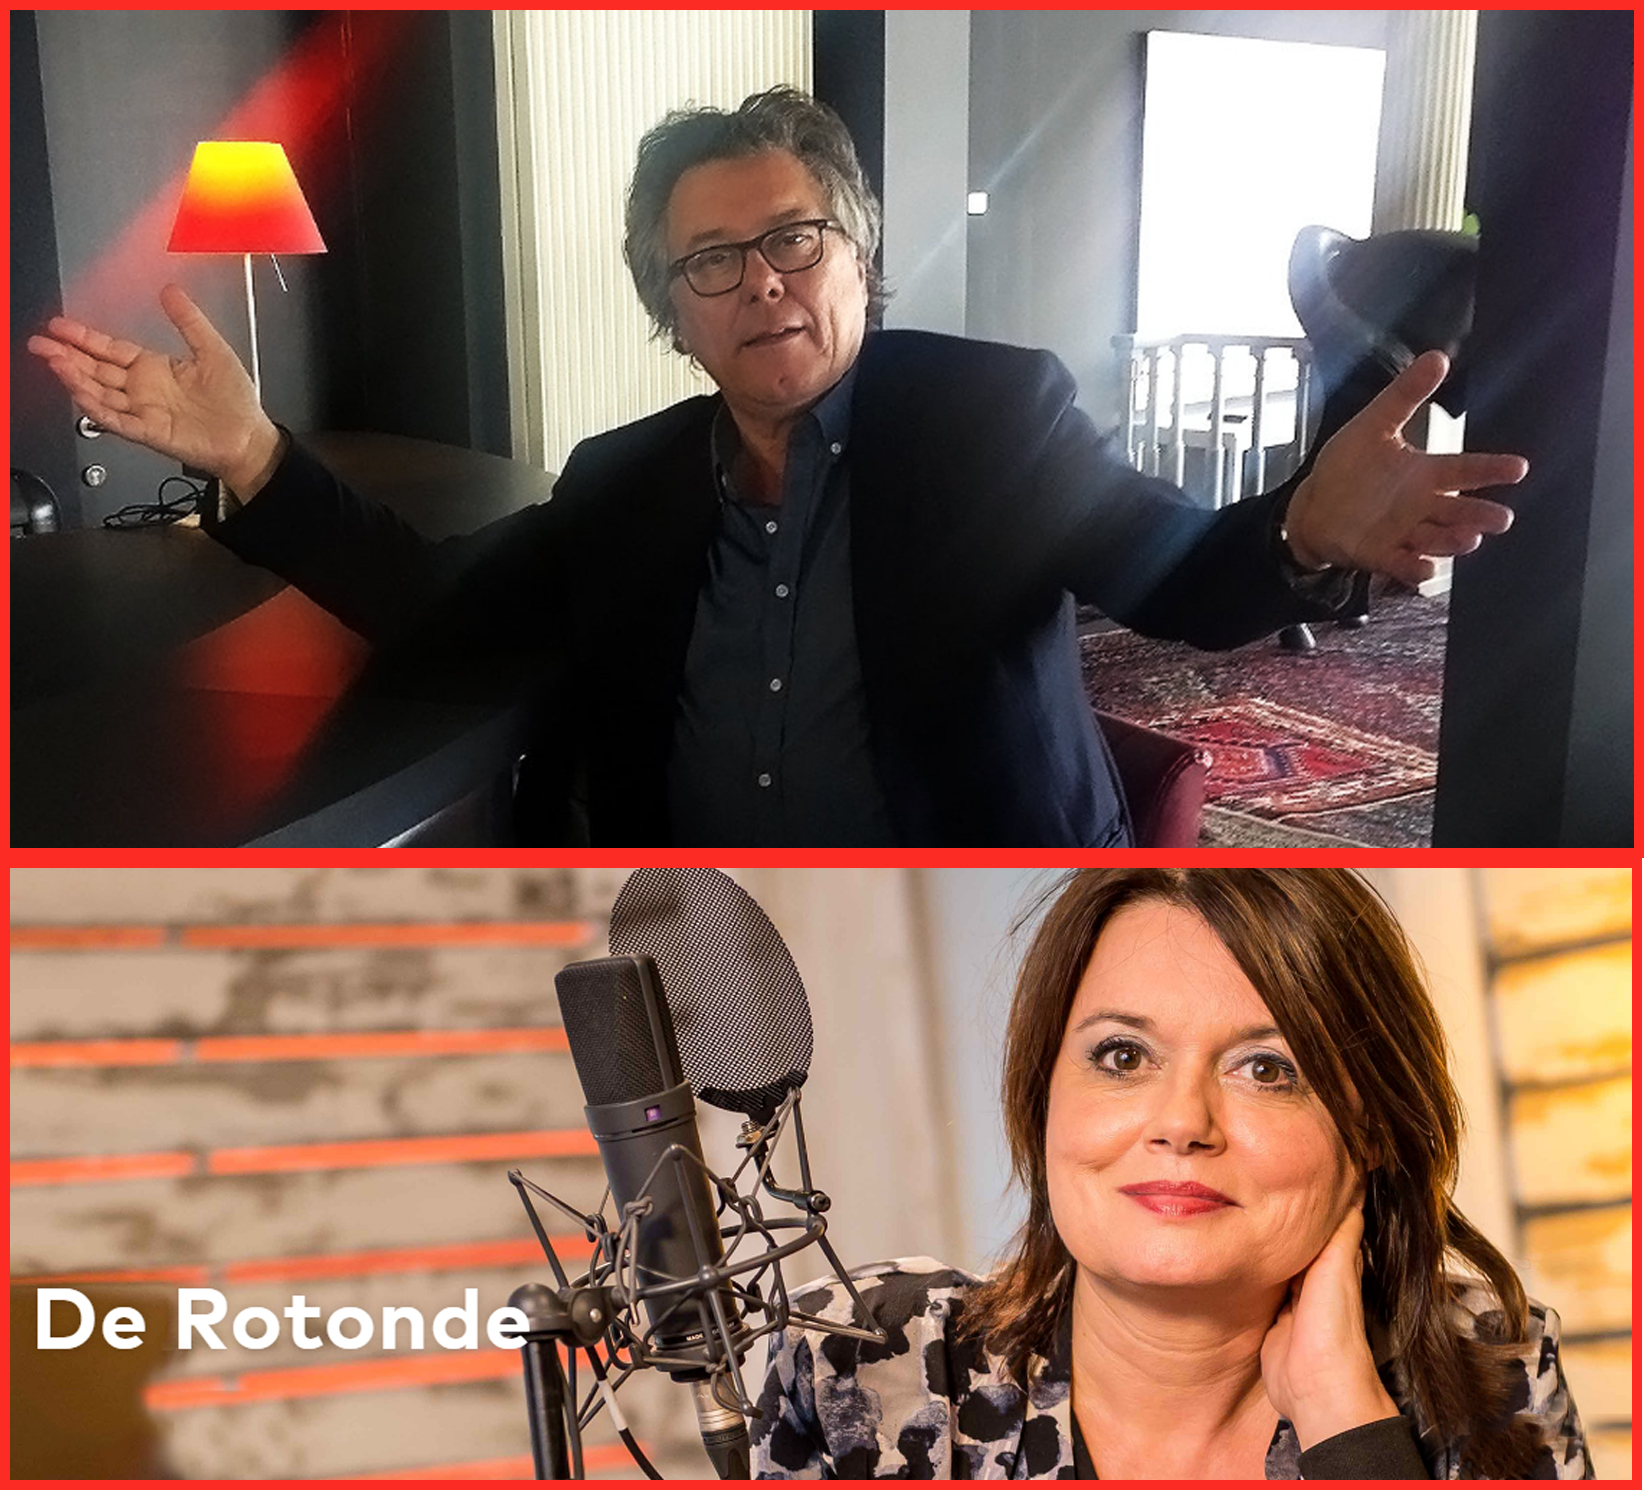 Johan op Radio 2 in 'De Rotonde' op 30 april 2017